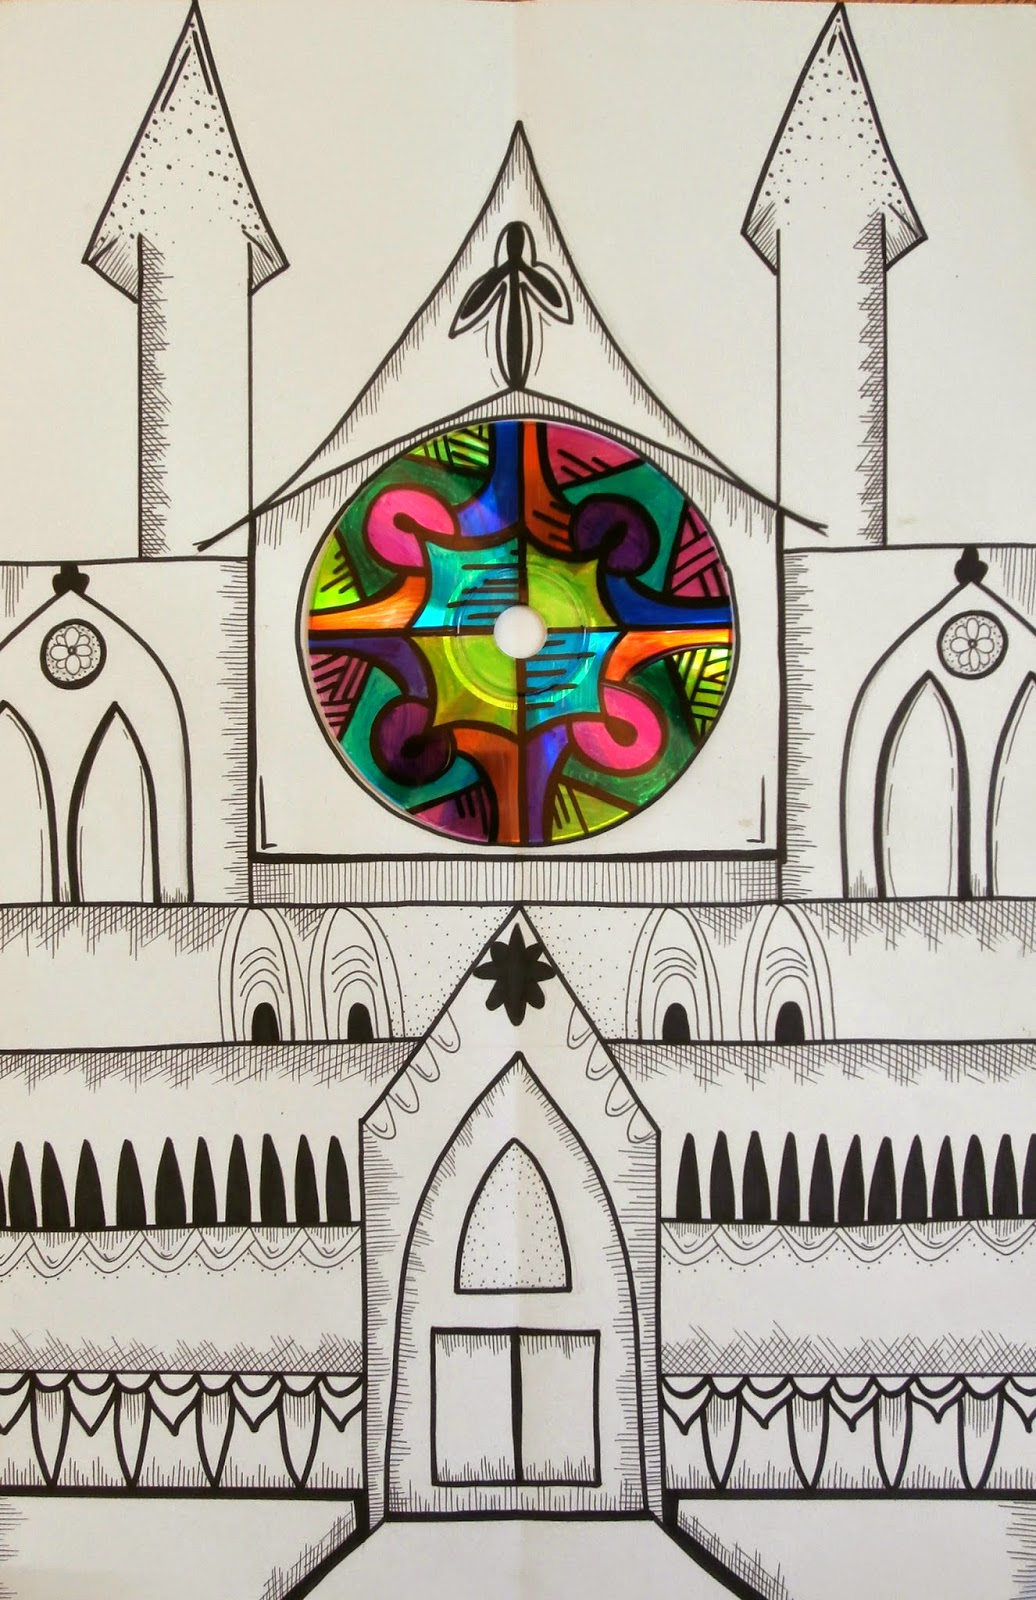 Students Began Drawing Rose Window Designs Onto Their CDs Once Details Were Added To The Cathedral Drawings With This Part Of Lesson